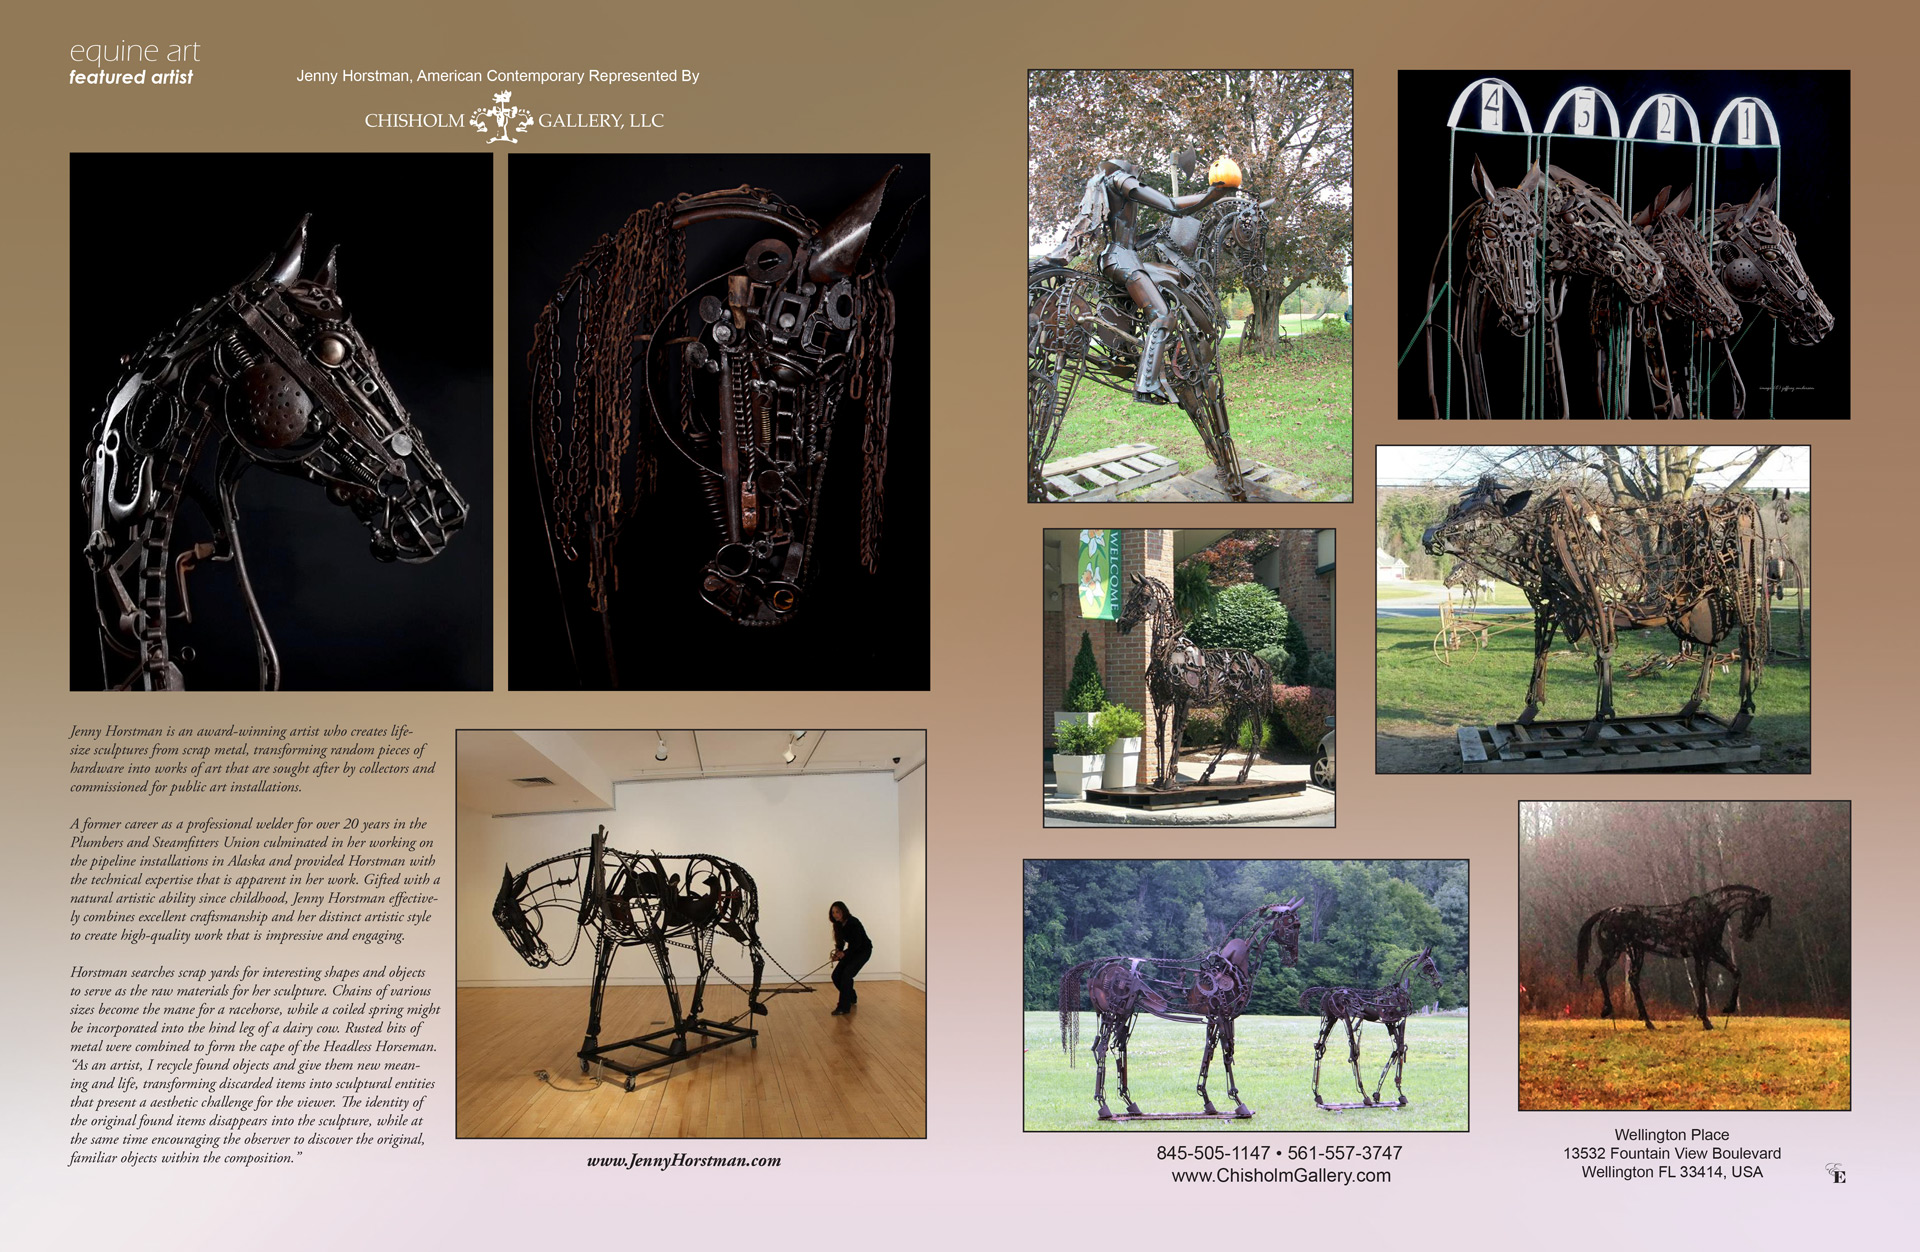 Equine Art September - Jenny Horstman - Chisholm Gallery